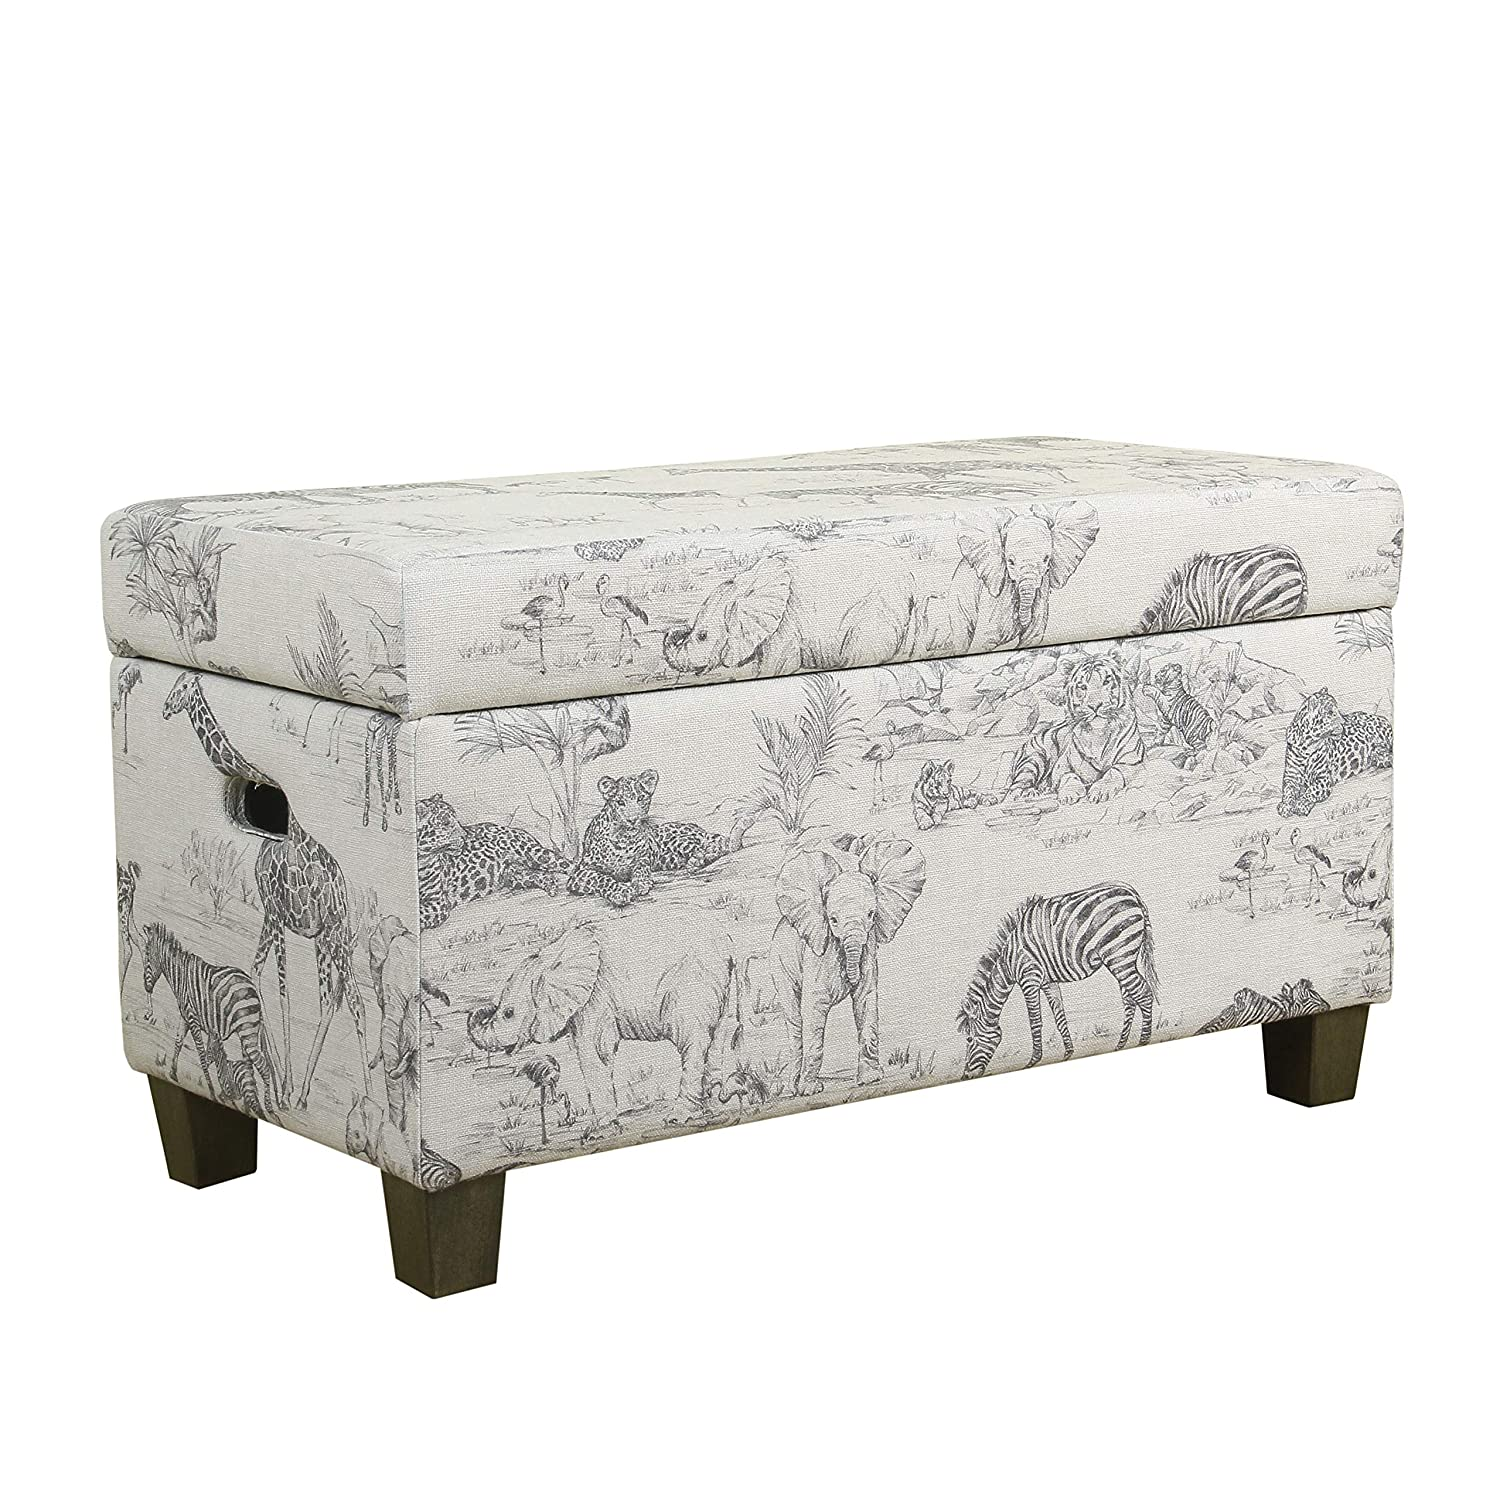 Gray brown storage bench entryway furniture wooden frameupholstered cushion top cut out handles patterned fabric foam padding bundle with our expert